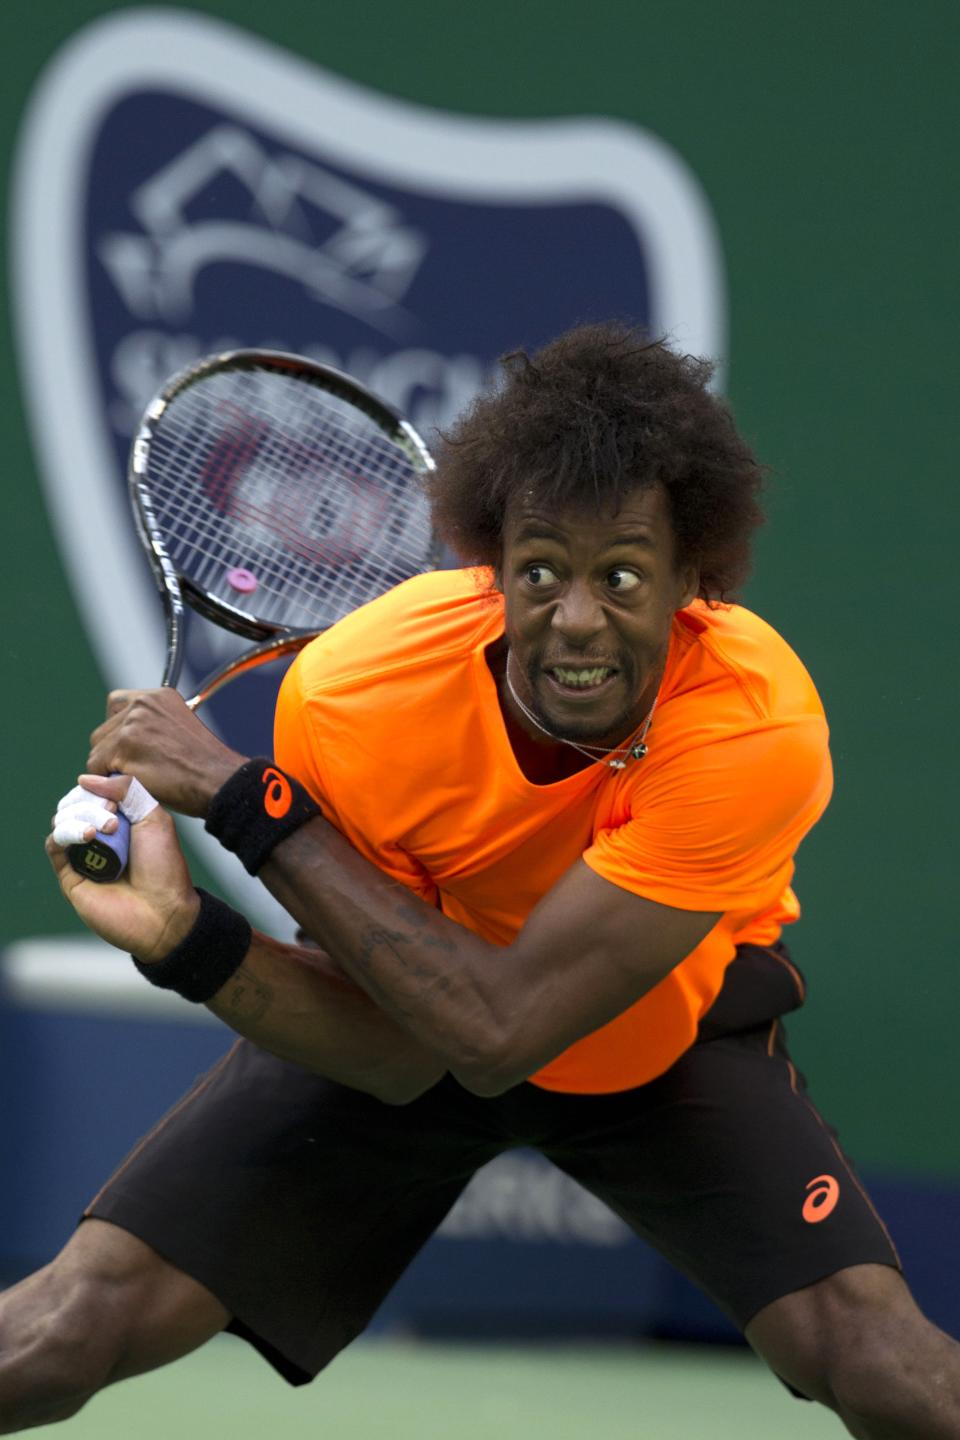 France's Gael Monfils returns a shot during a match against Switzerland's Roger Federer at the Shanghai Masters tennis tournament at the Qizhong Forest Sports City Tennis Center in Shanghai, China, Thursday, Oct. 10, 2013. Monfils won 6-4, 6-7, 6-3. (AP Photo/Ng Han Guan)